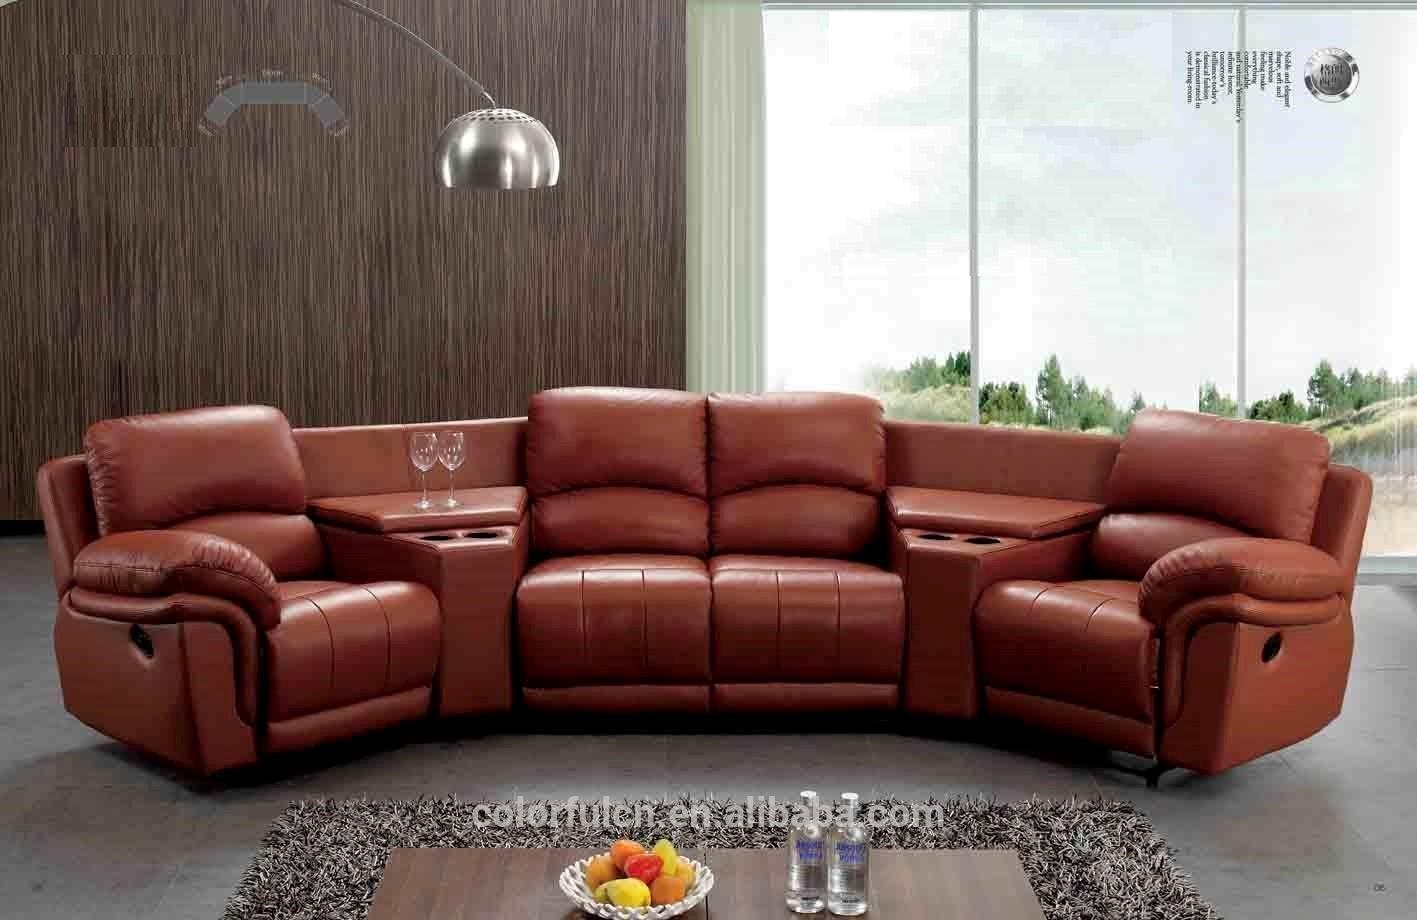 Semi Circular Sectional Sofa | Sofa Gallery | Kengire Within Semi Circular Sectional Sofas (View 3 of 20)